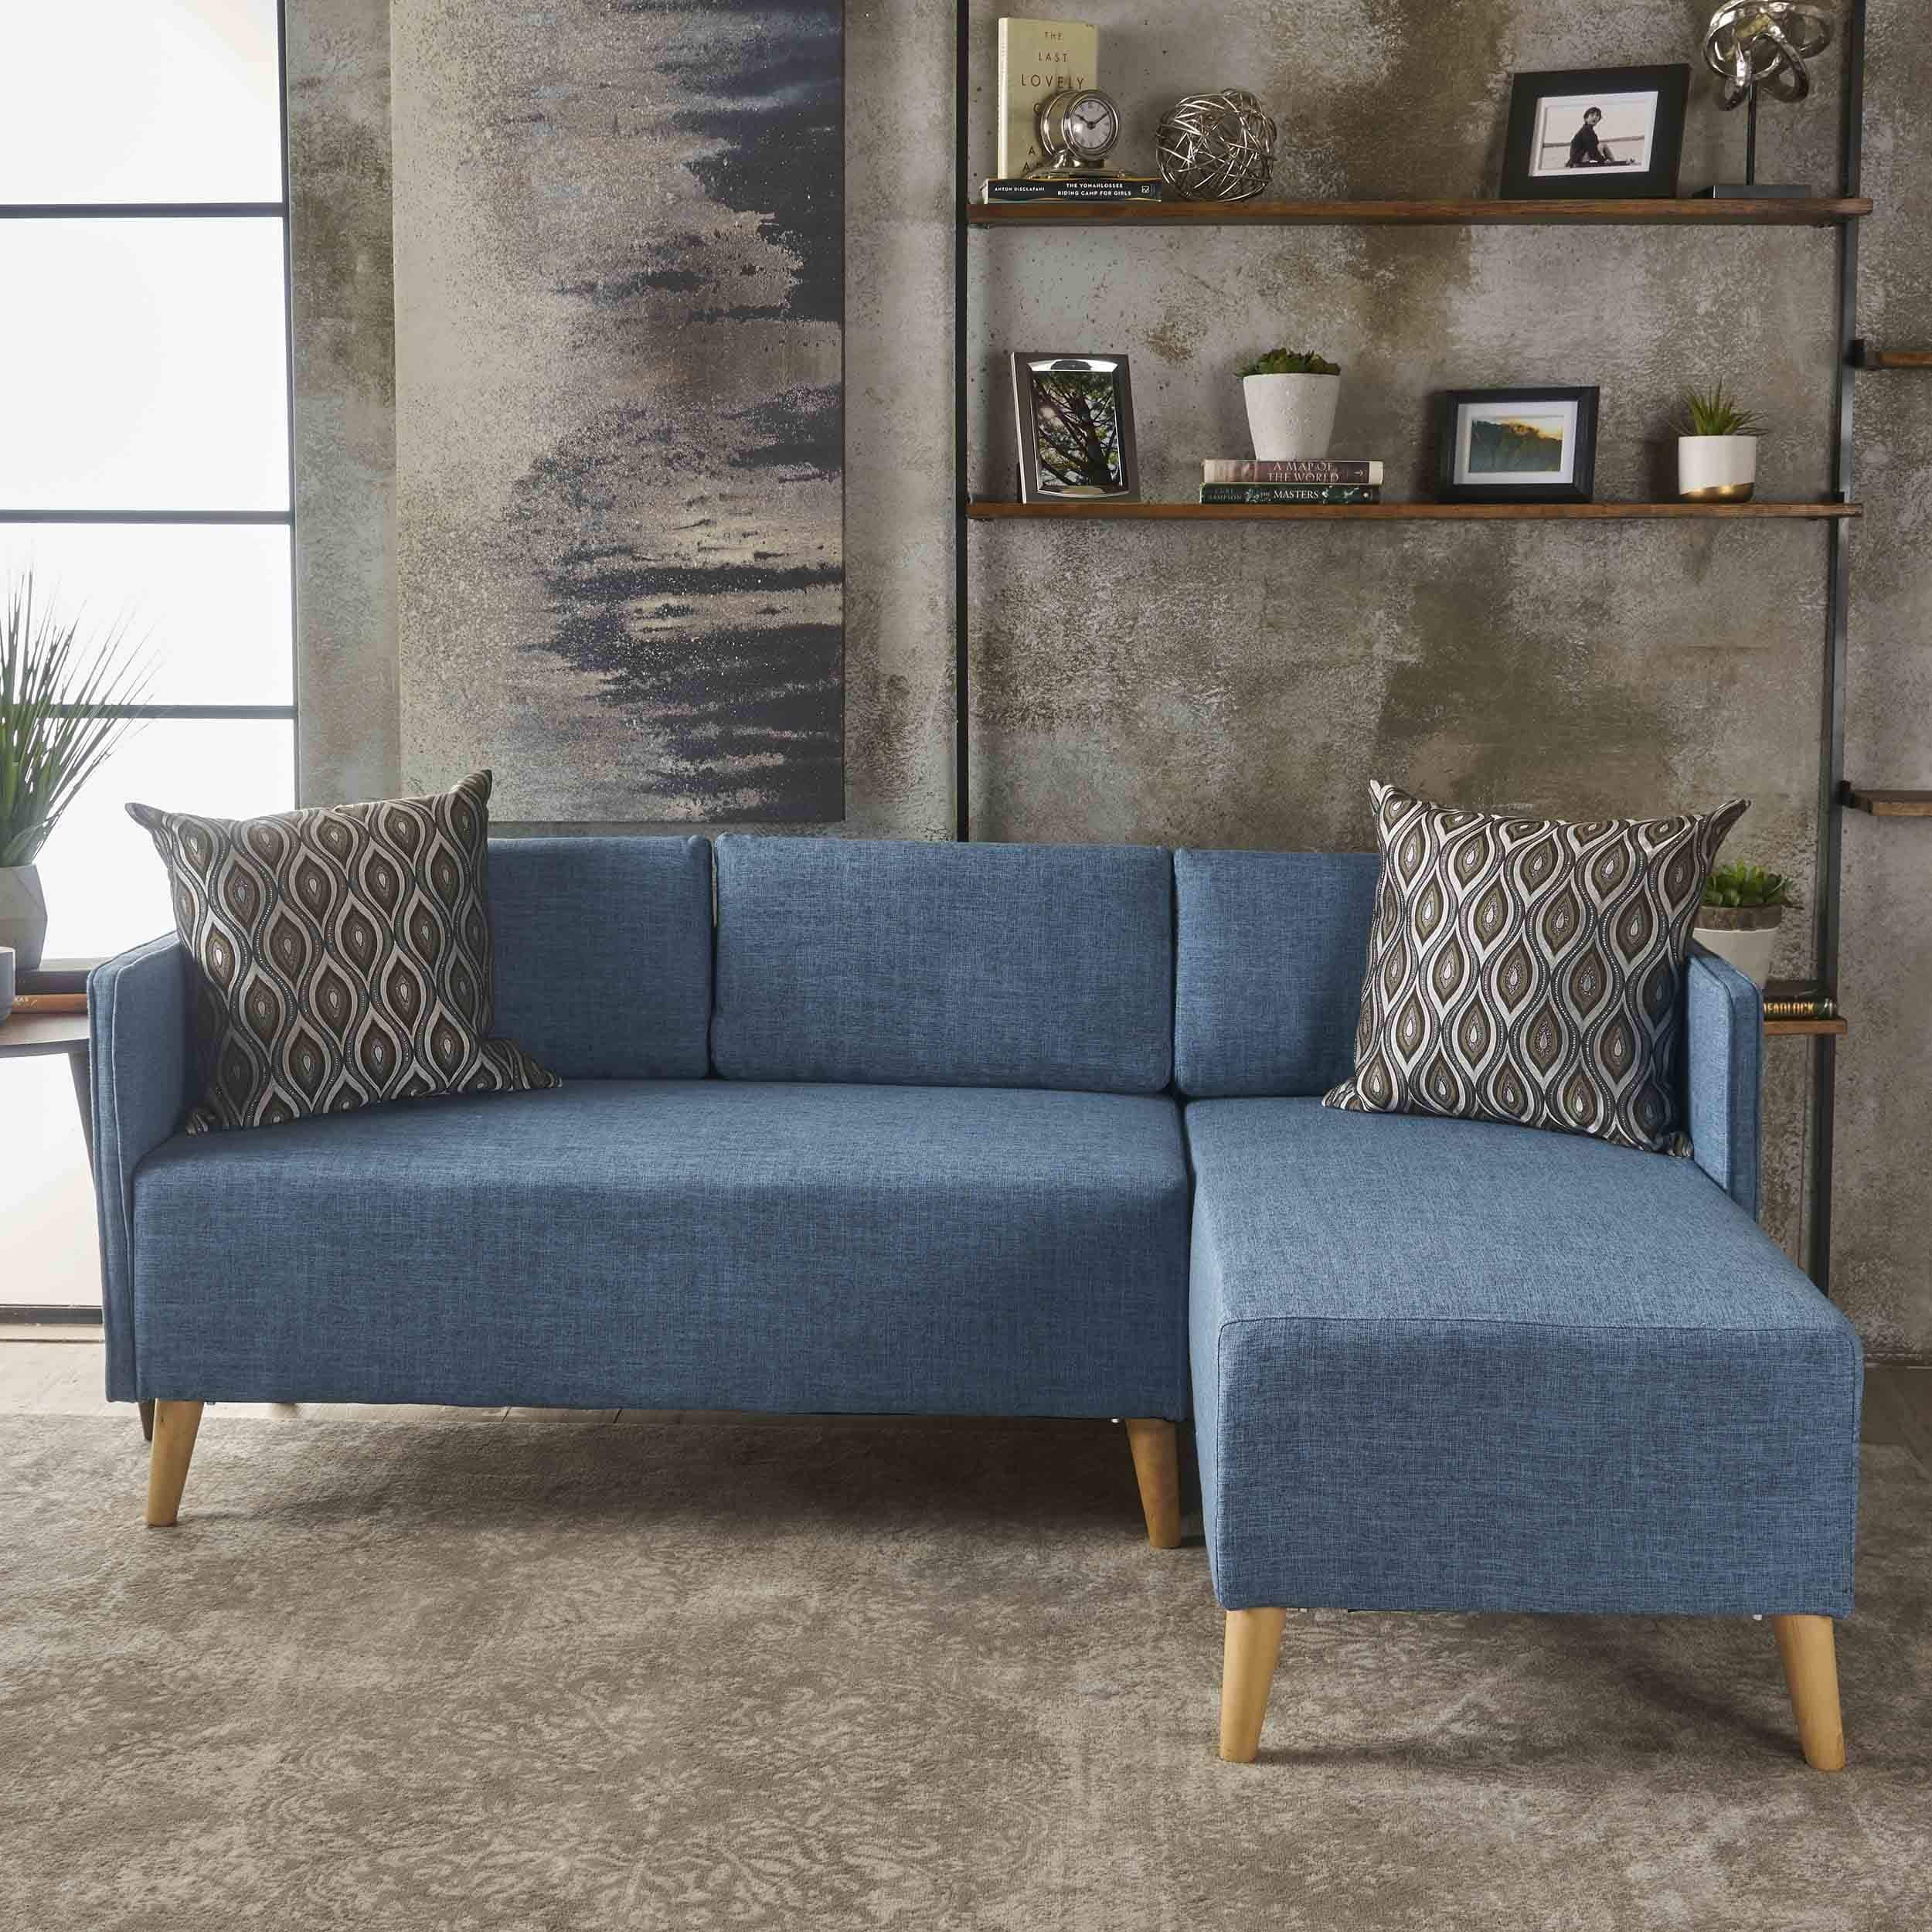 Awesome Christopher Knight Home Augustus Modern 2 Piece Chaise Sectional Sofa Set By Andrewgaddart Wooden Chair Designs For Living Room Andrewgaddartcom